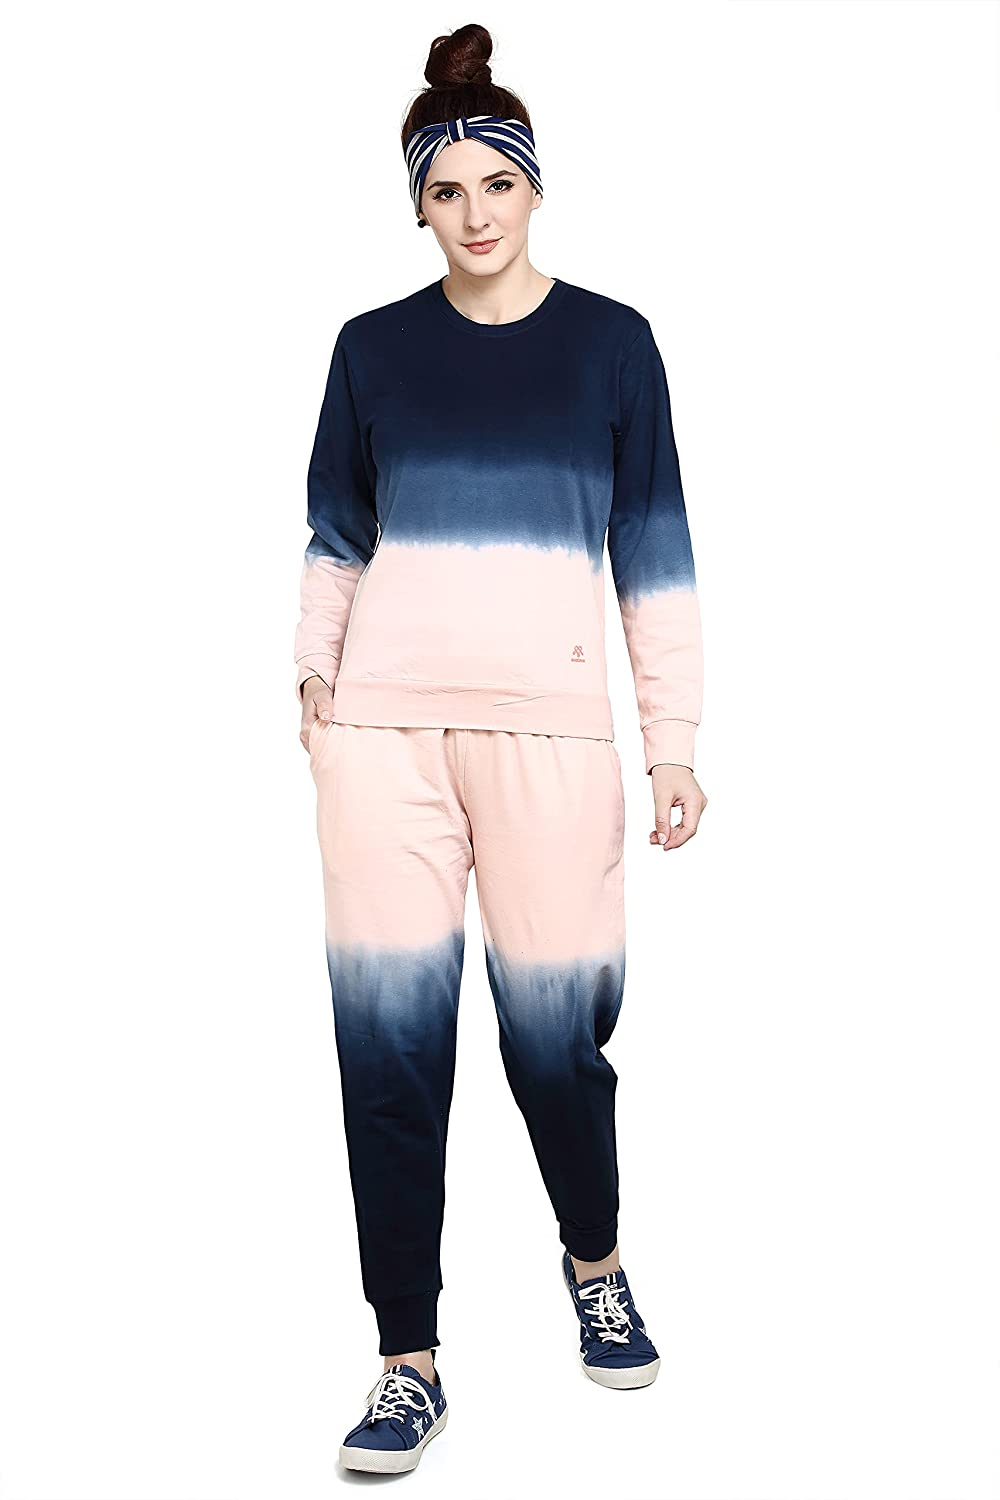 Girlistan - Discover How To Style Sweatshirts